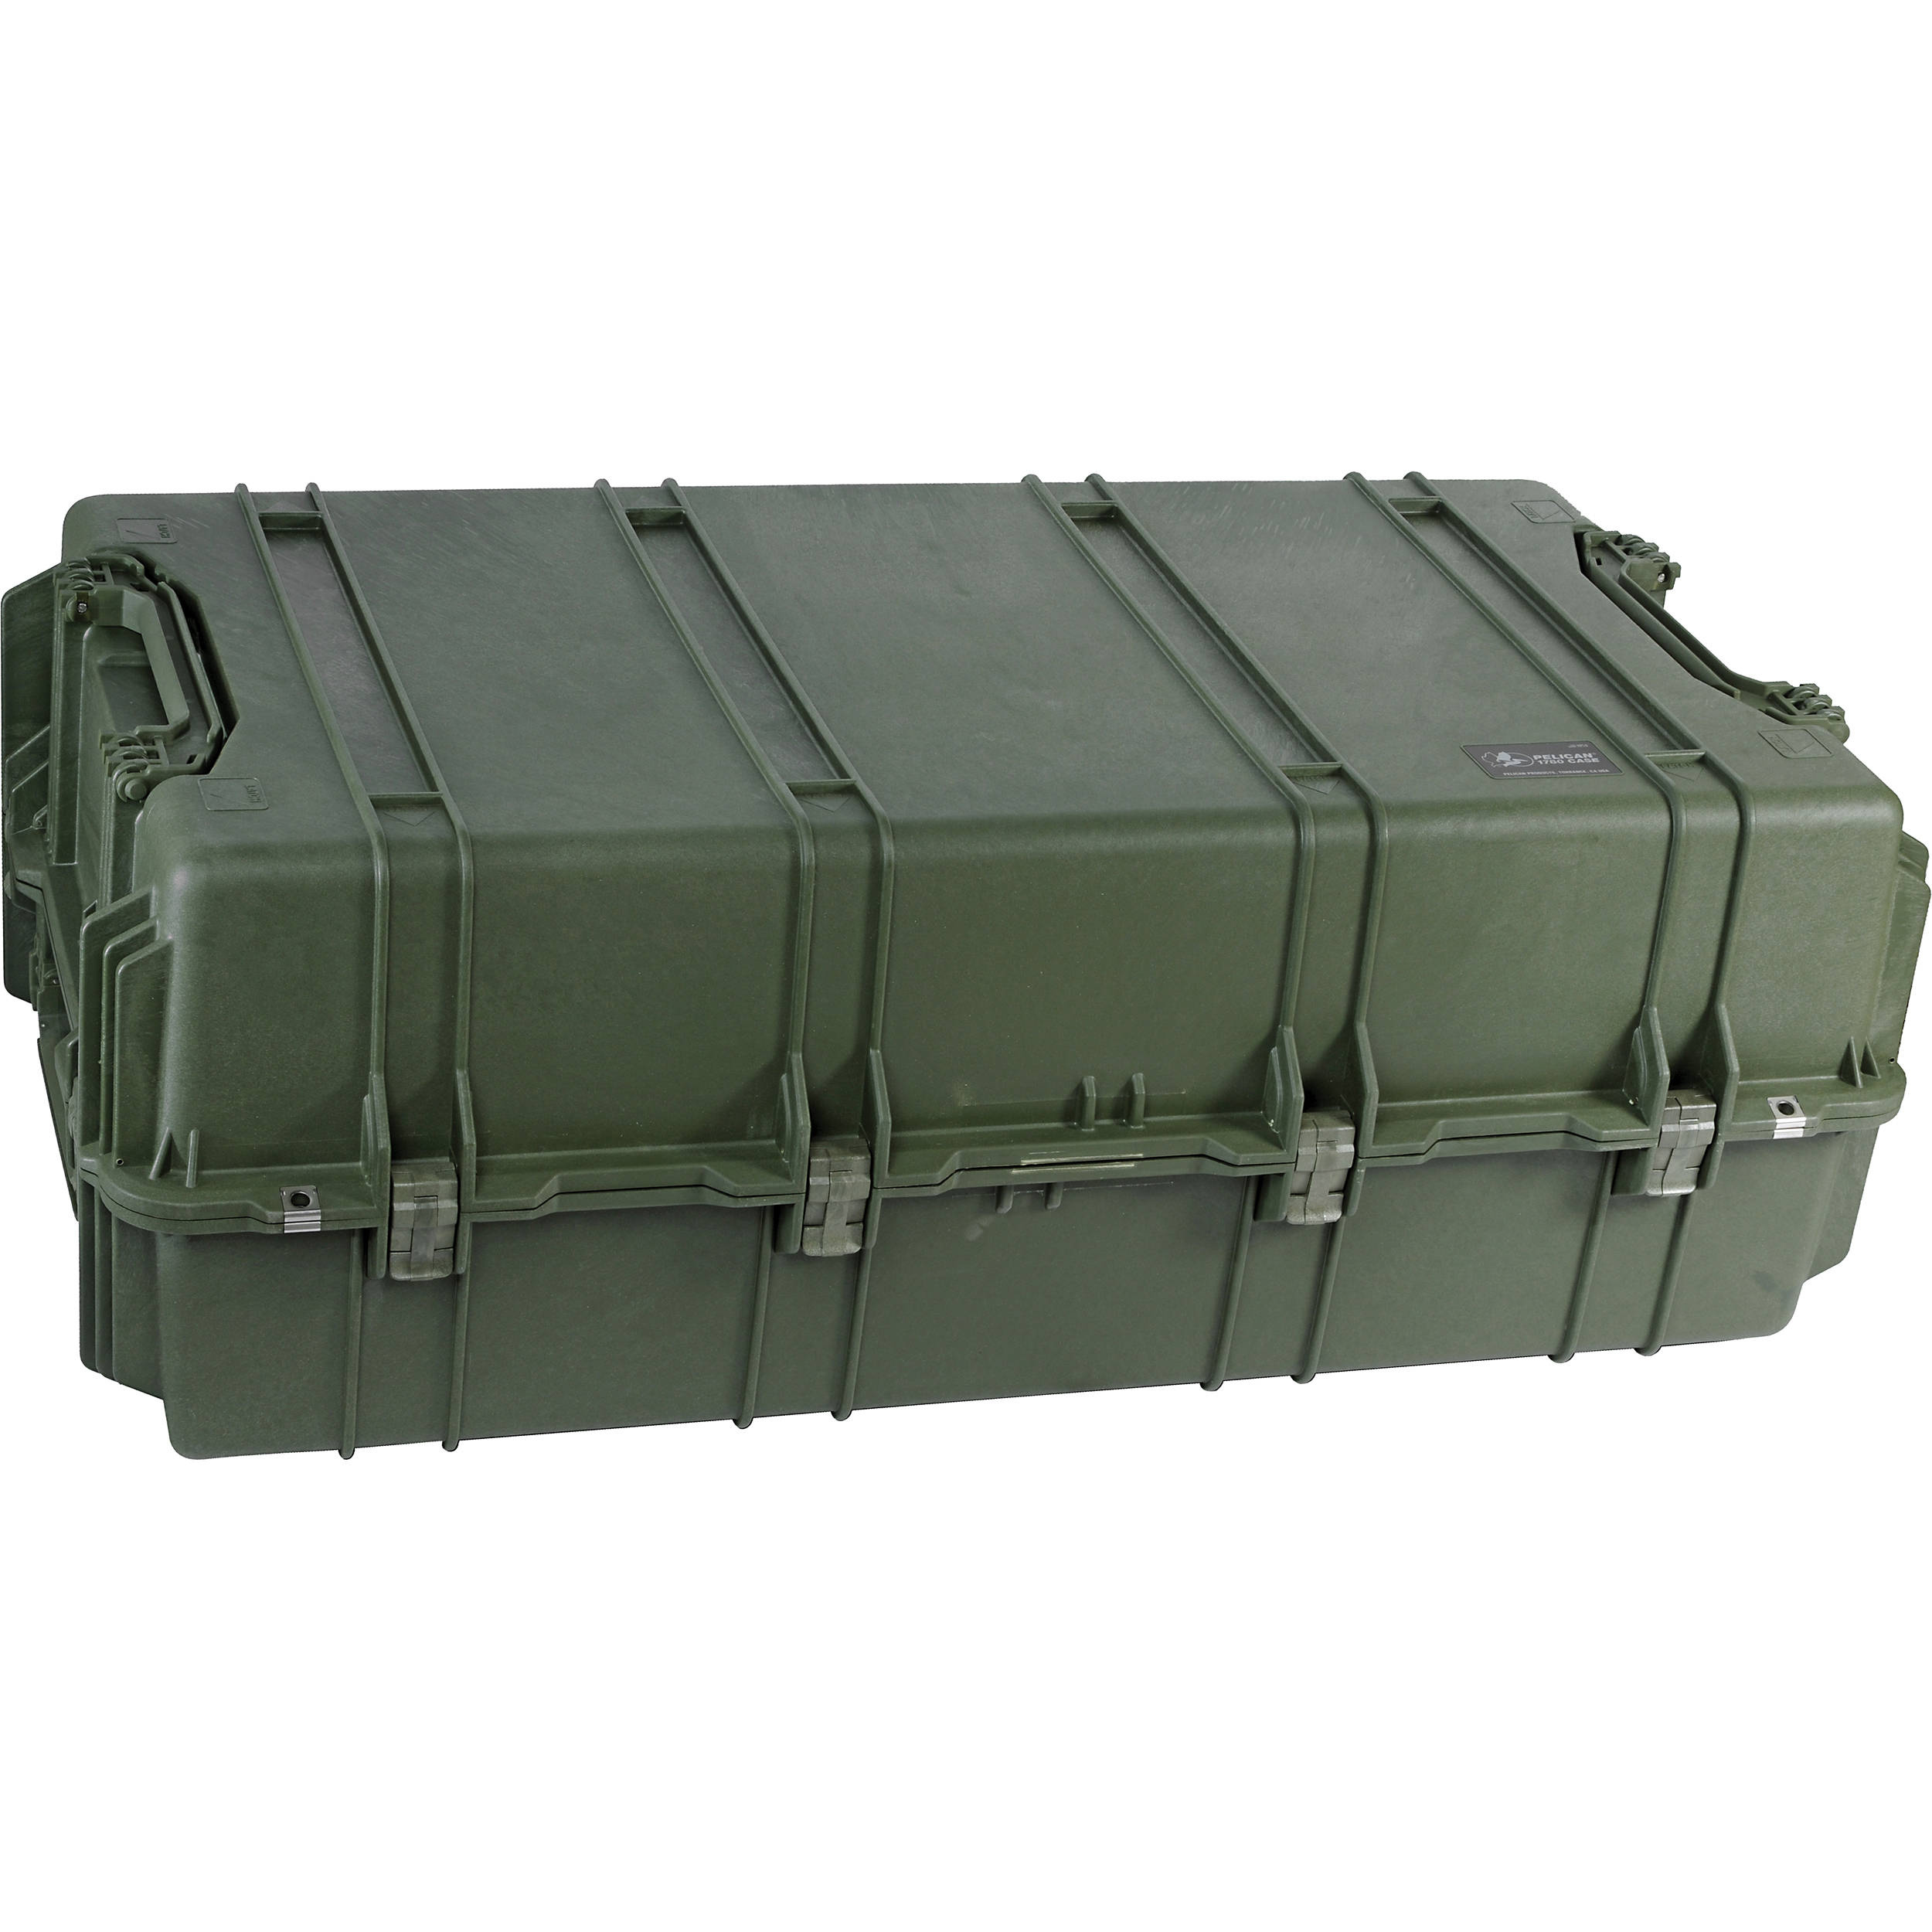 Pelican 1780 Transport Case without Foam (Olive Drab Green)